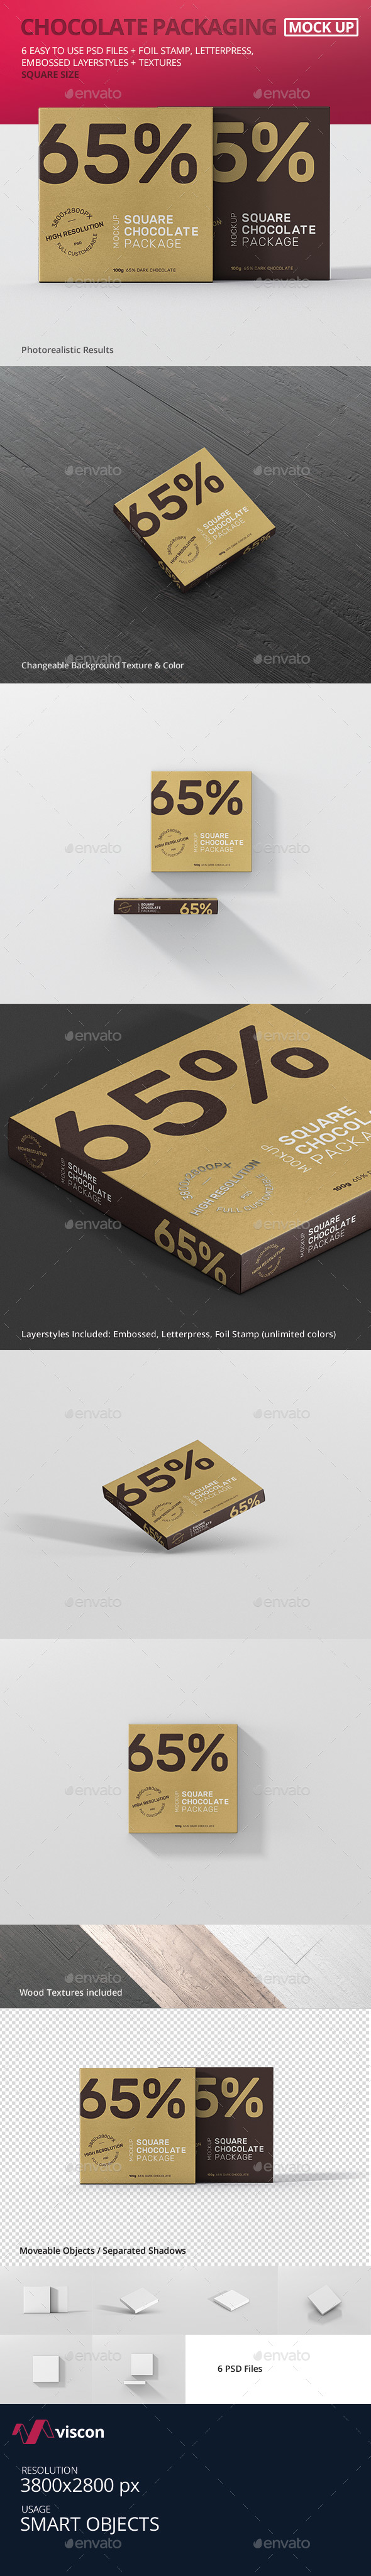 Chocolate Packaging Mockup Square Size - Food and Drink Packaging